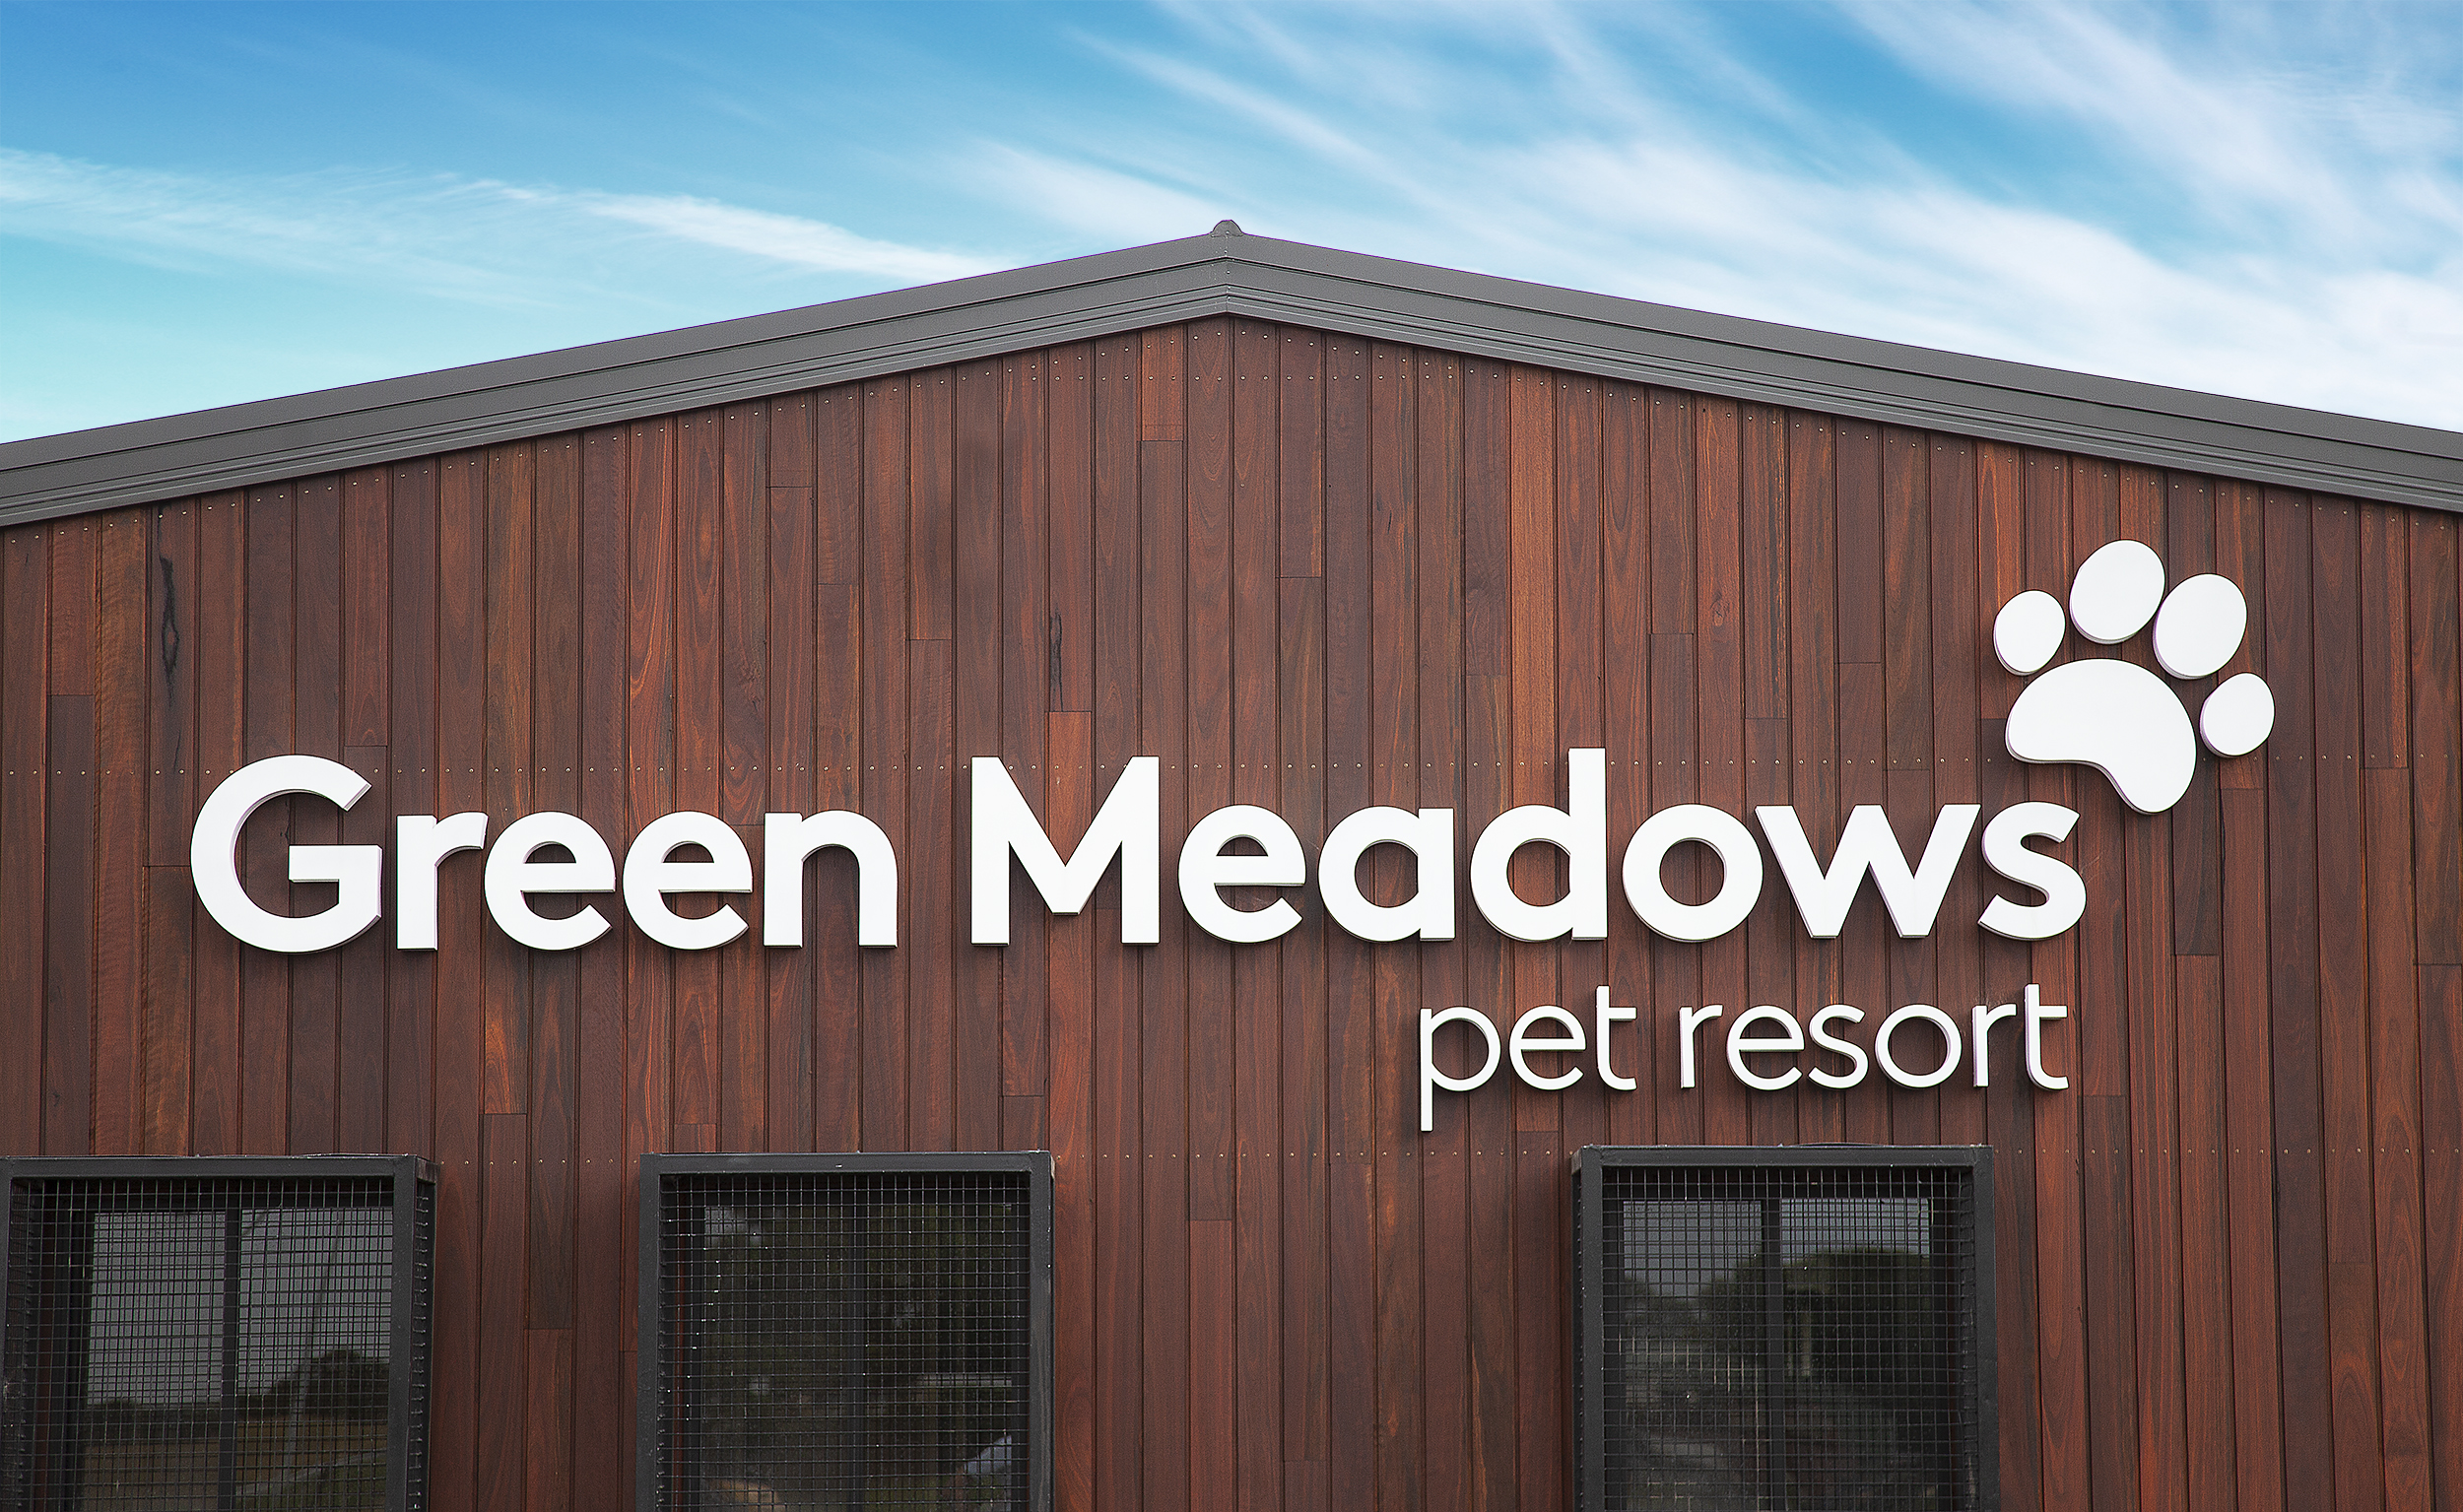 Green Meadows Pet Resort Signage